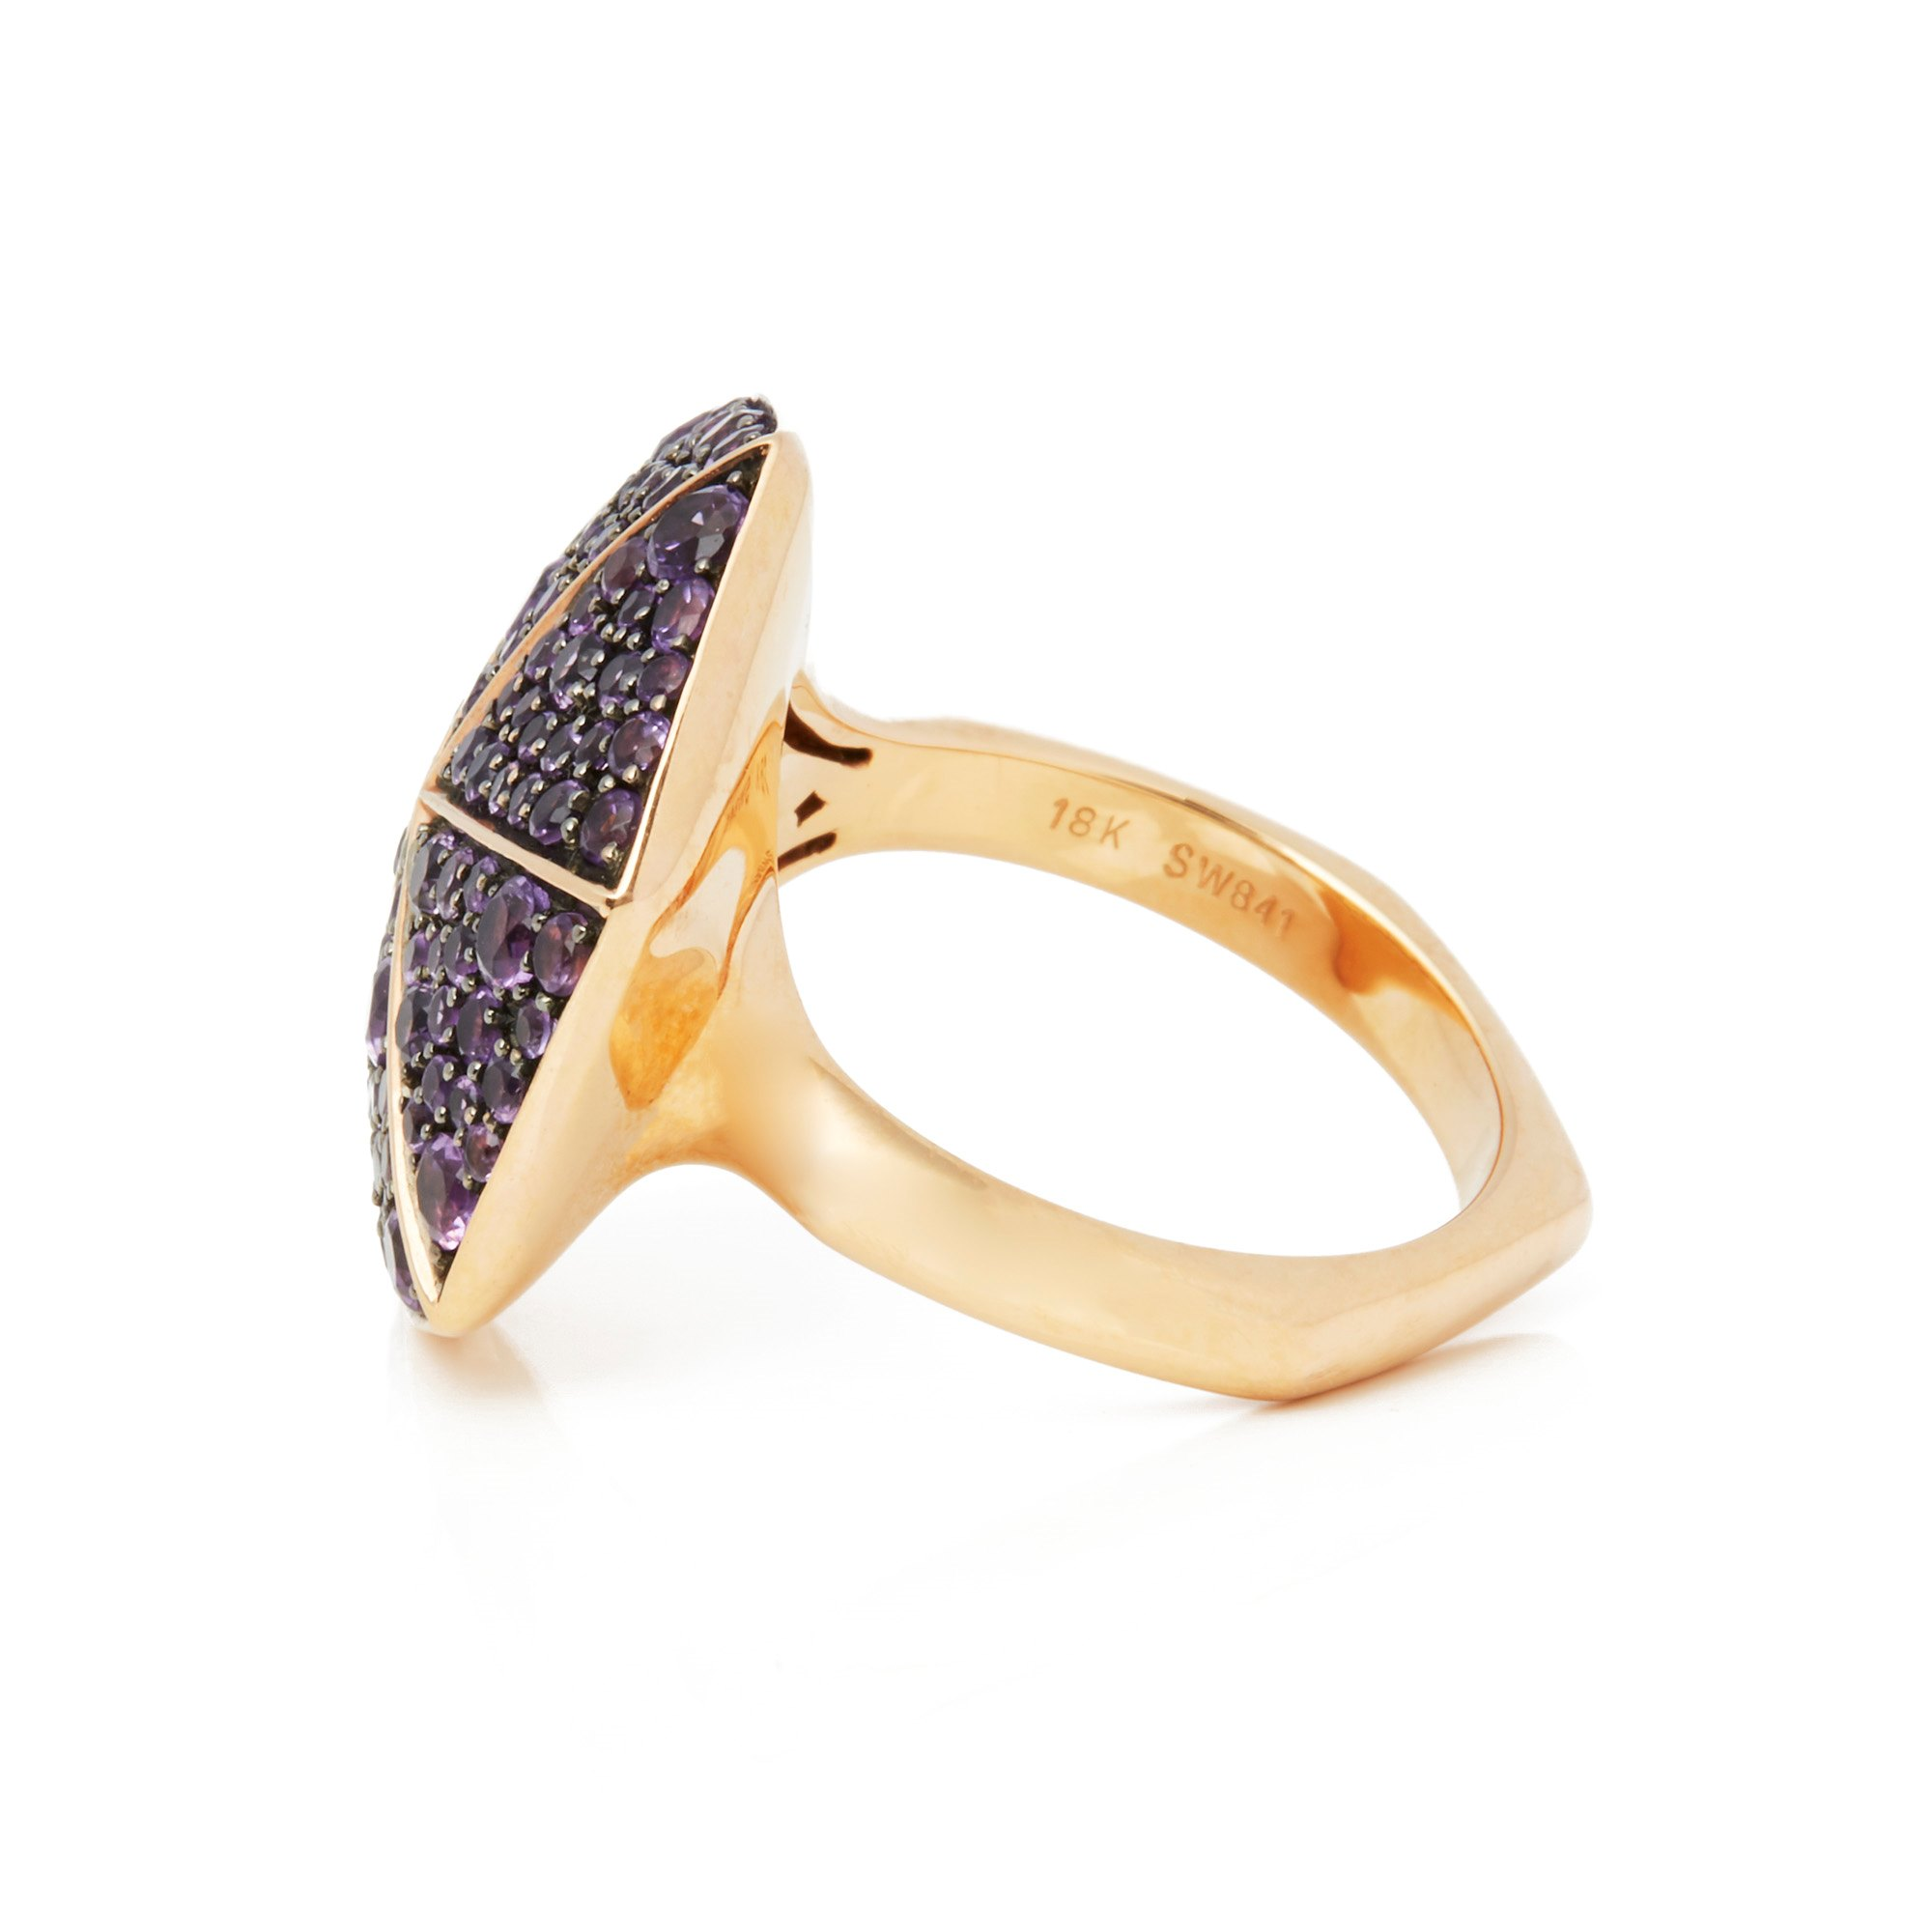 Stephen Webster 18k Rose Gold full Pave Amethyst Deco Ring